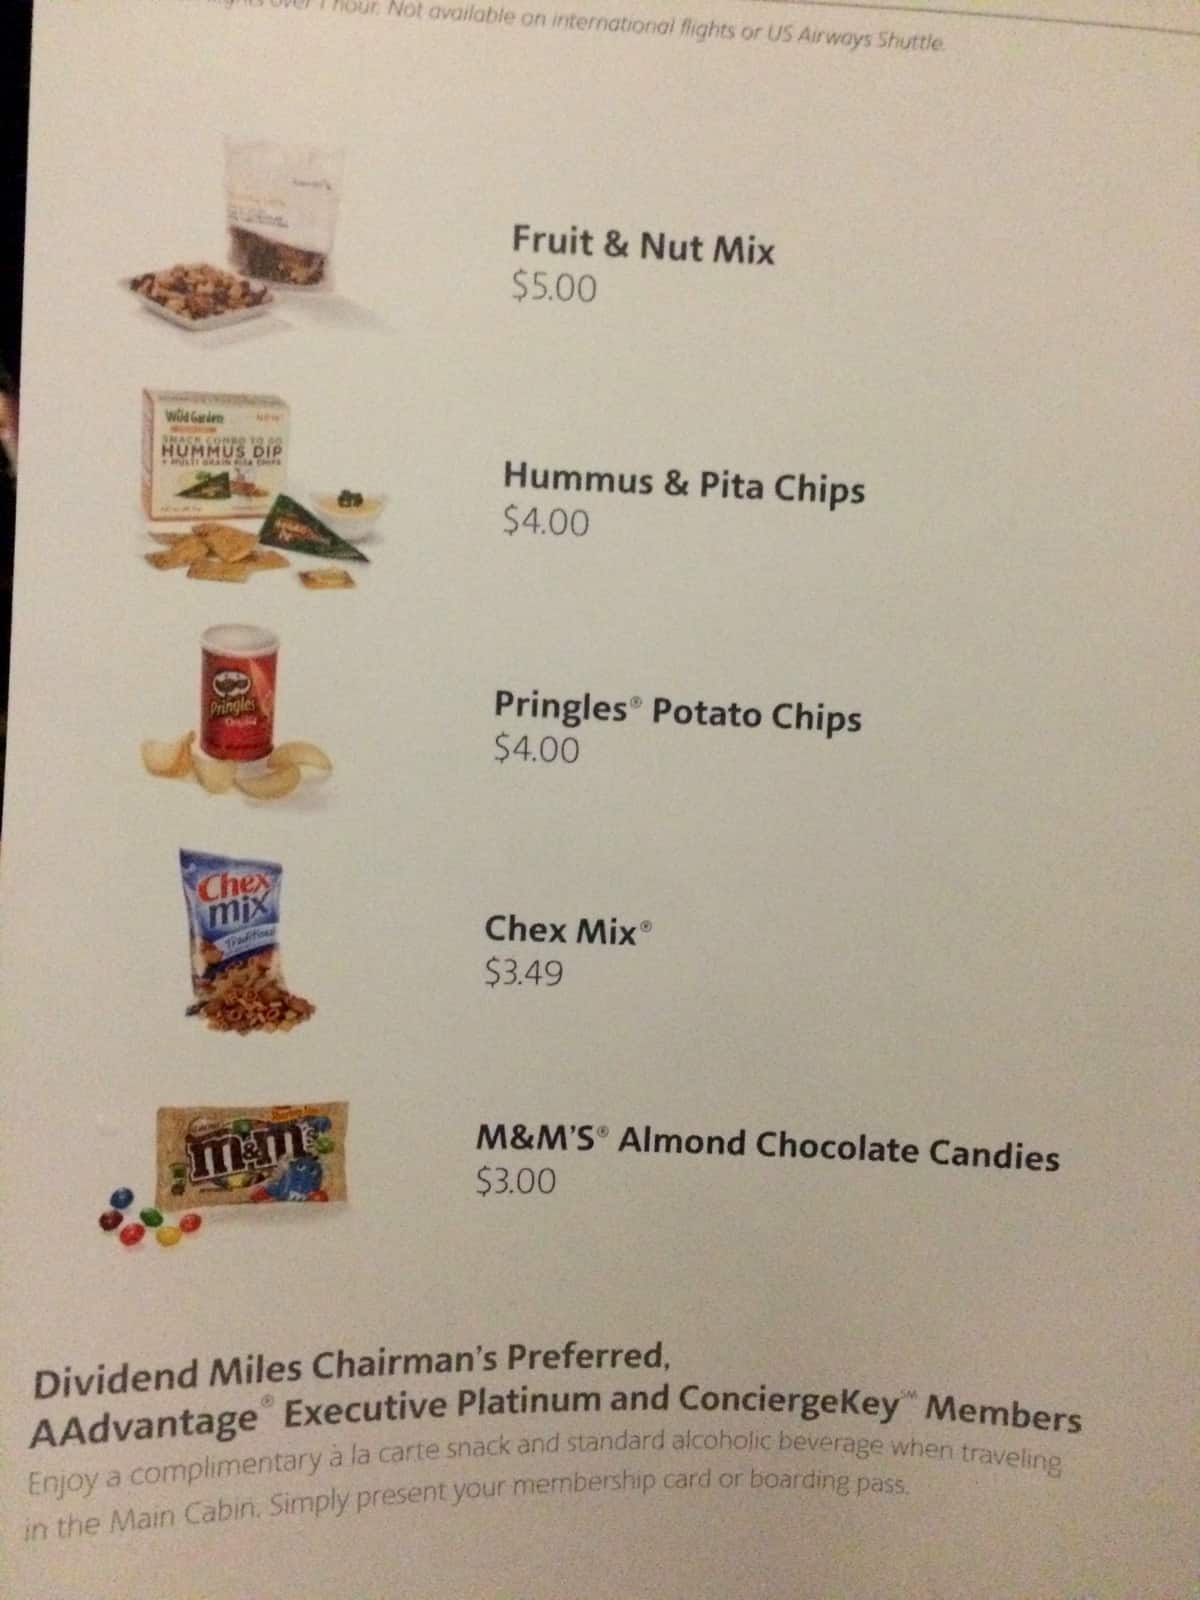 Reduced benefits for EXPs on American Airlines Traveling Well For Less